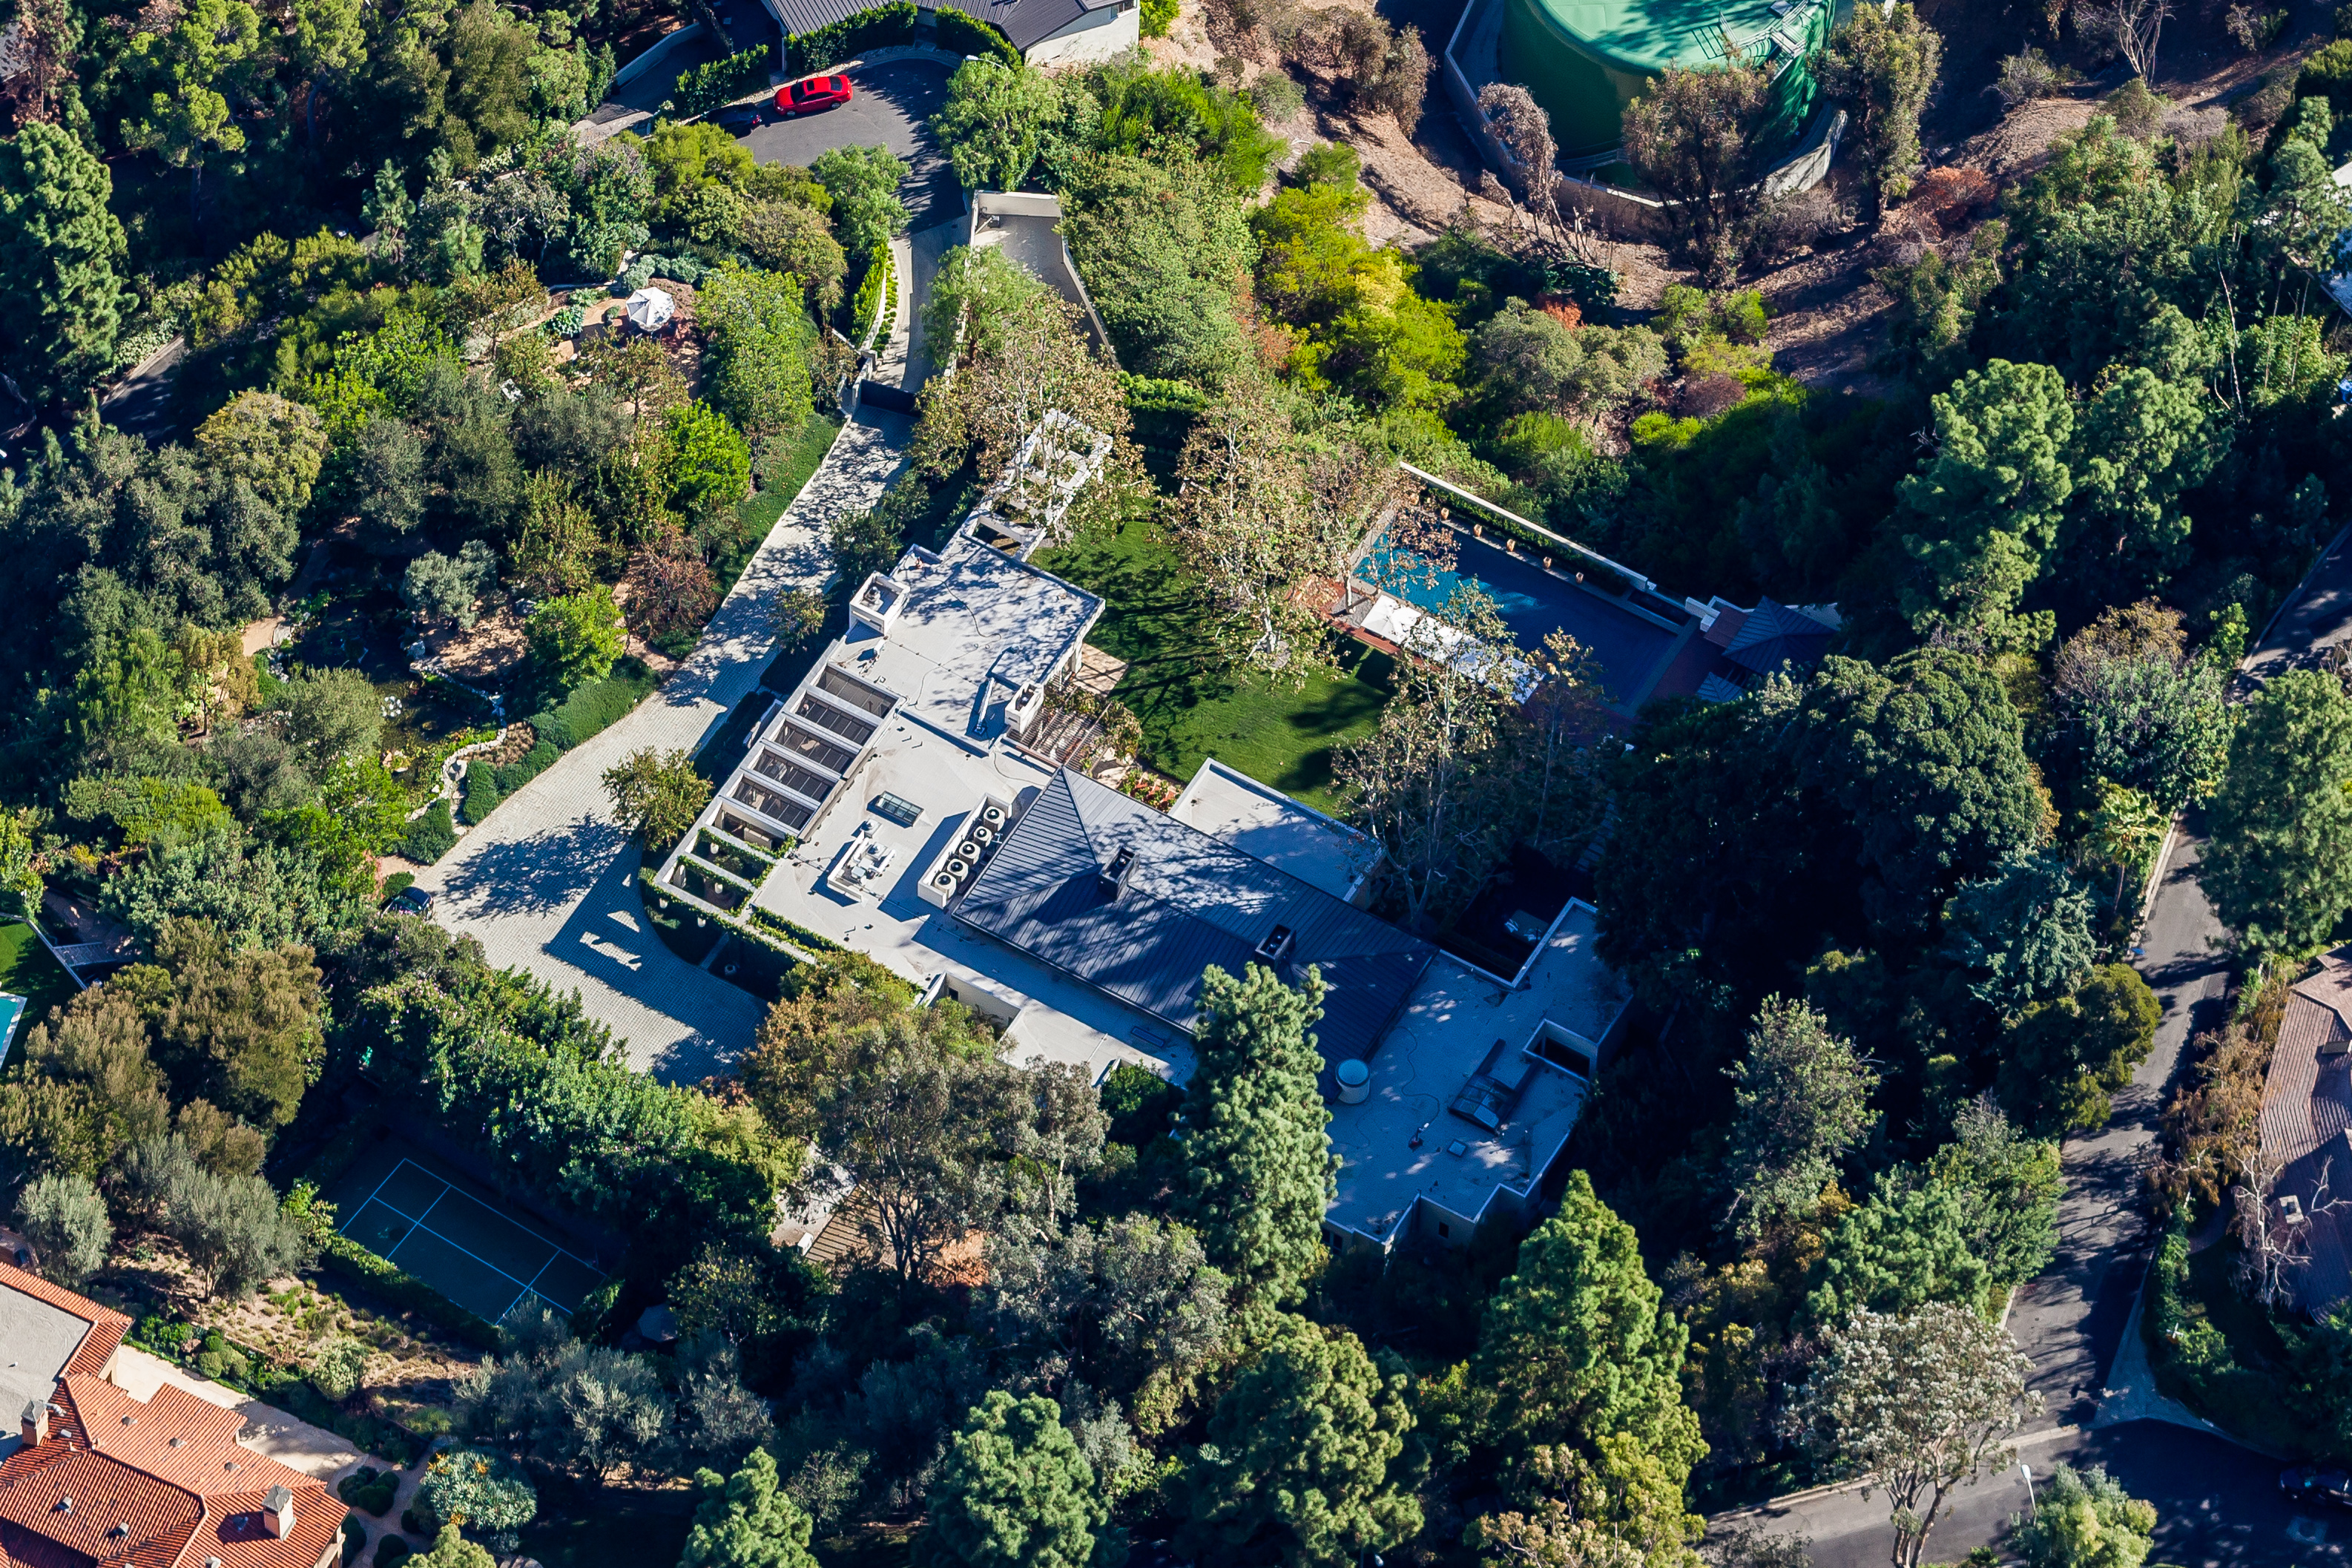 Ryan Seacrest's home includes 9 rooms and spans 3 acres in prestigious Beverly Hills